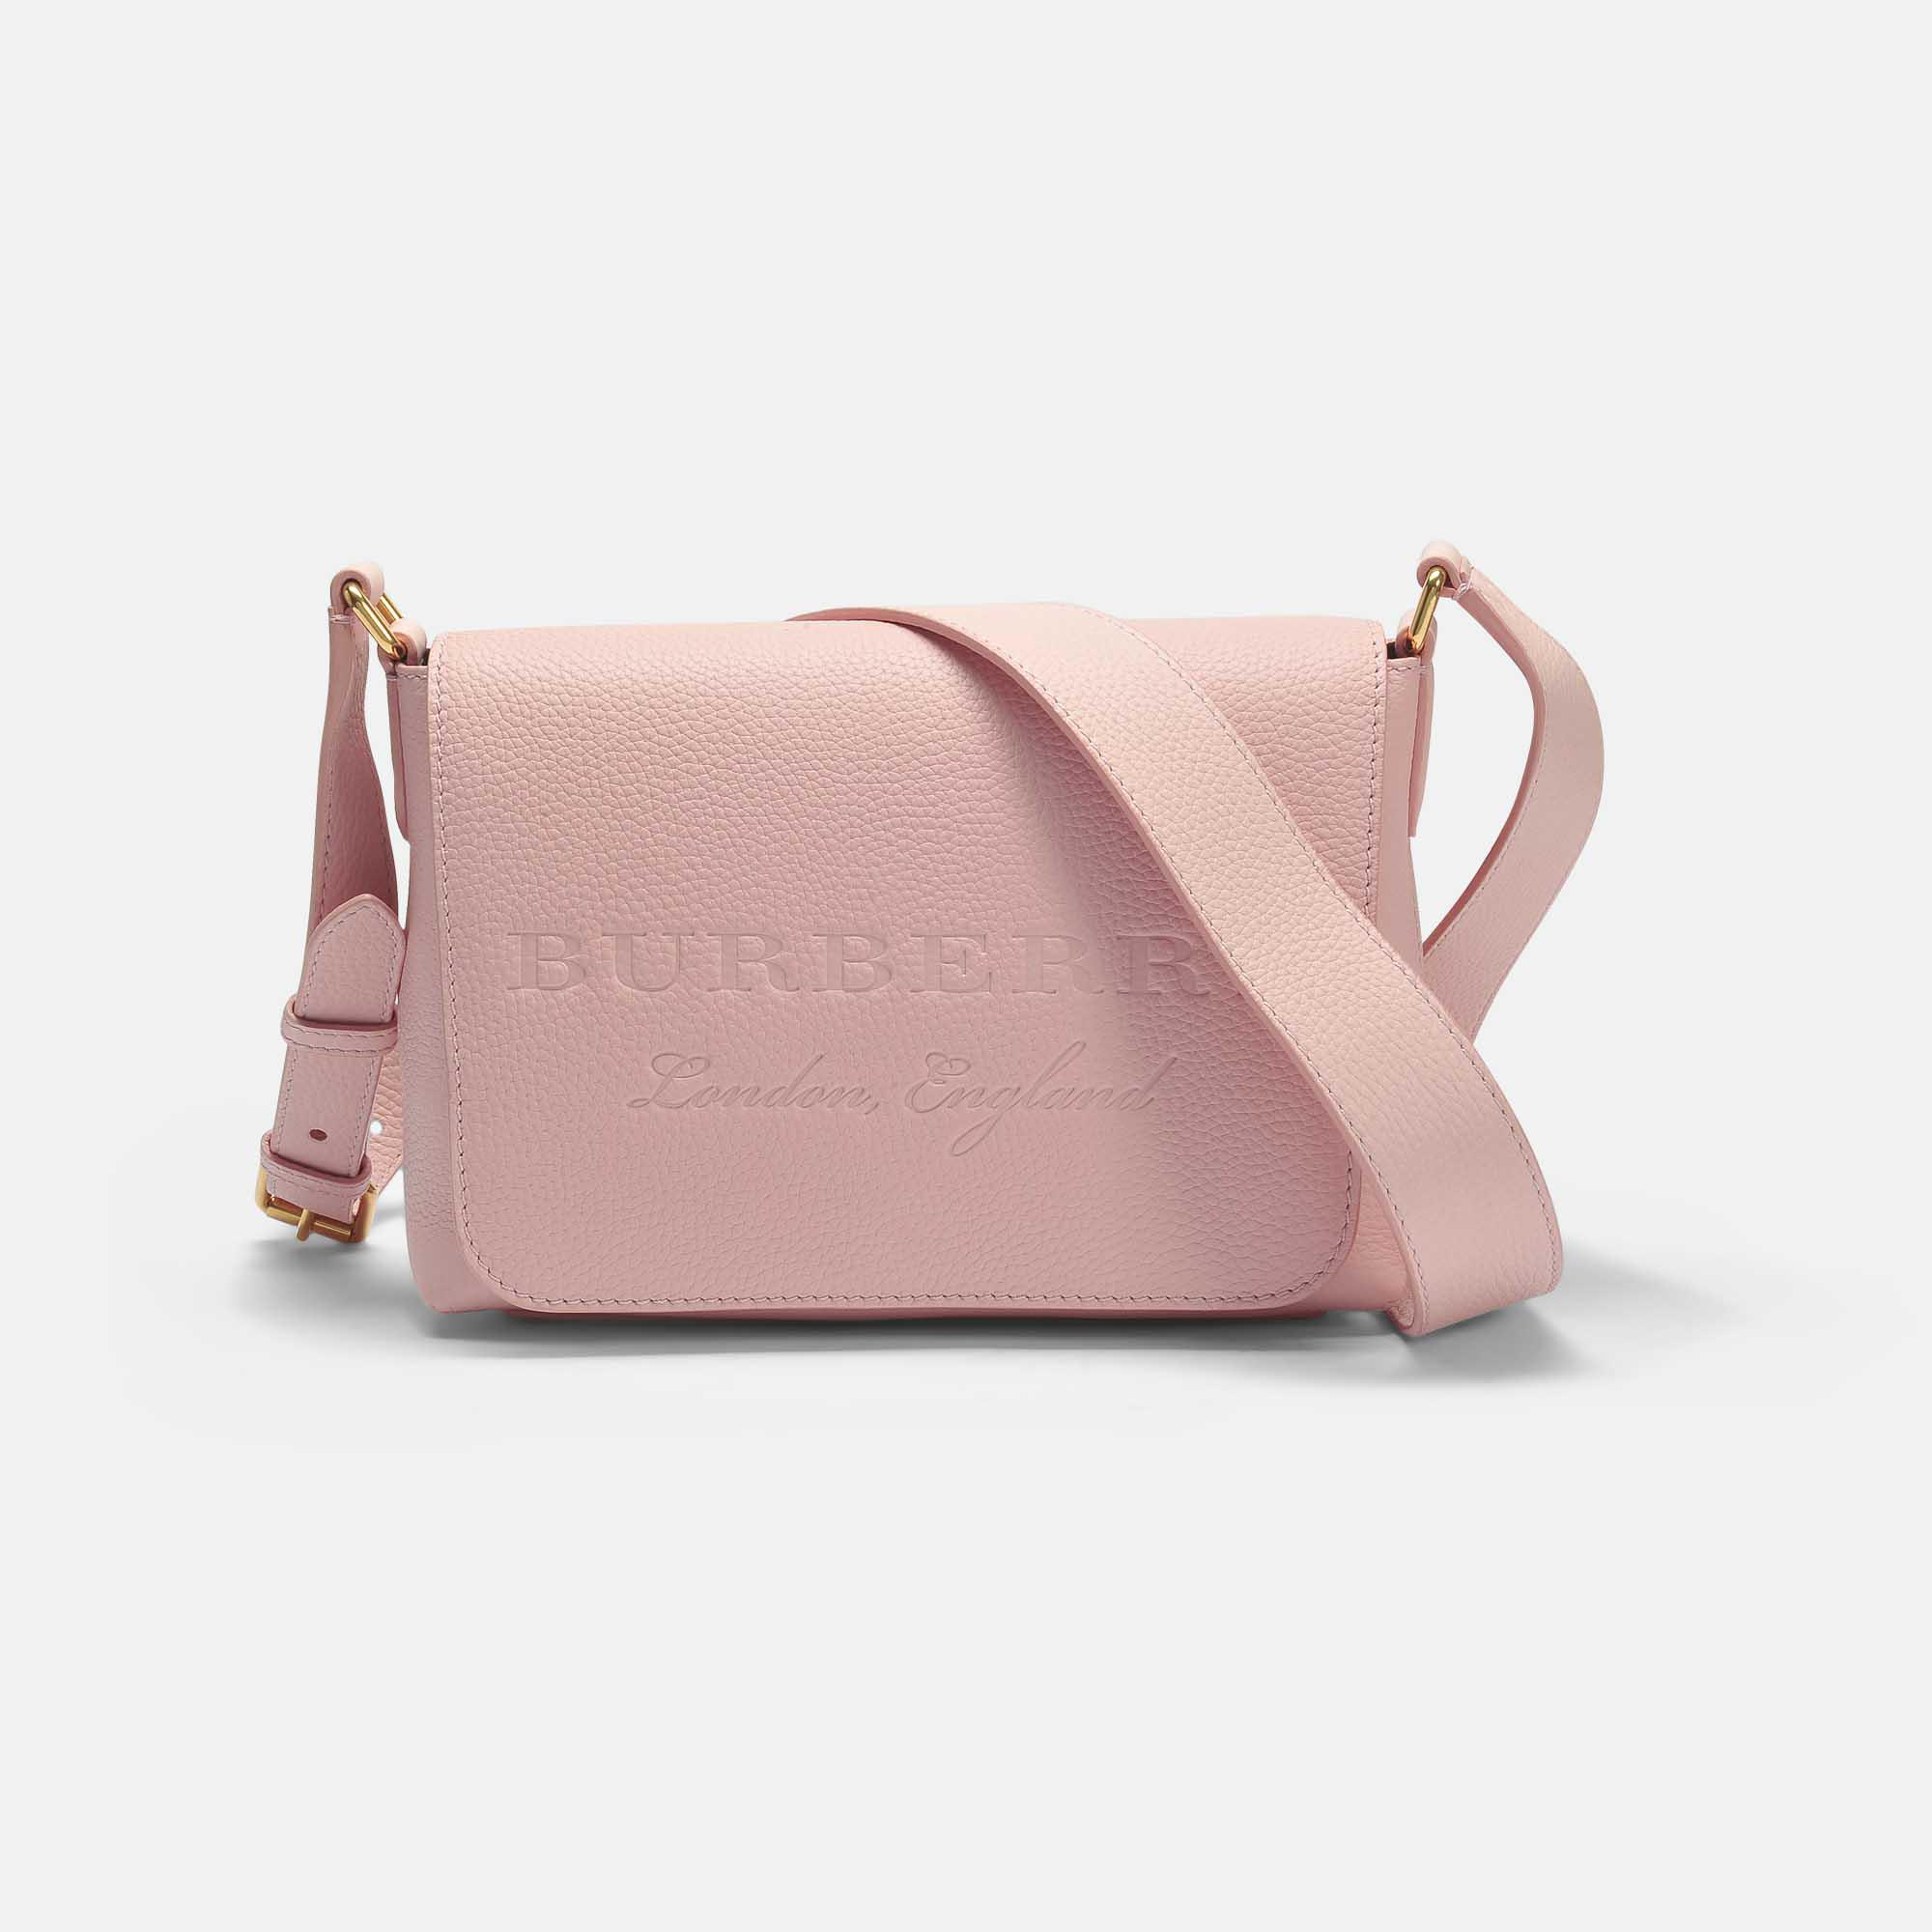 cce0ea6ca62 Burberry Small Burleigh Crossbody Bag In Pale Ash Rose Grained ...